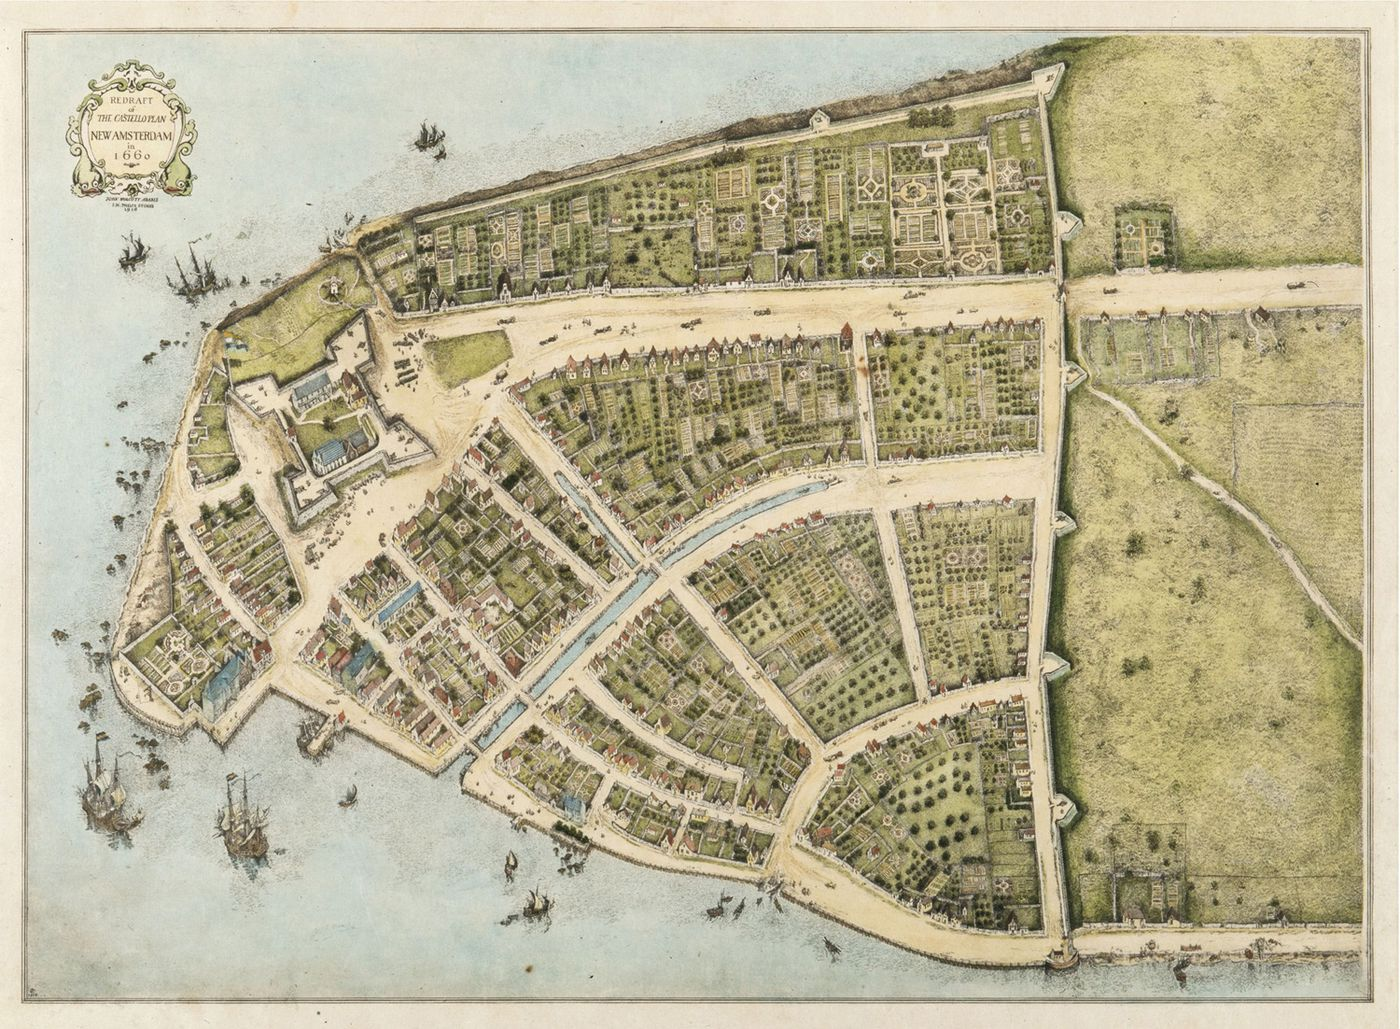 When Wall Street Was a Wall: A 1660 Map of Manhattan - Curbed NY